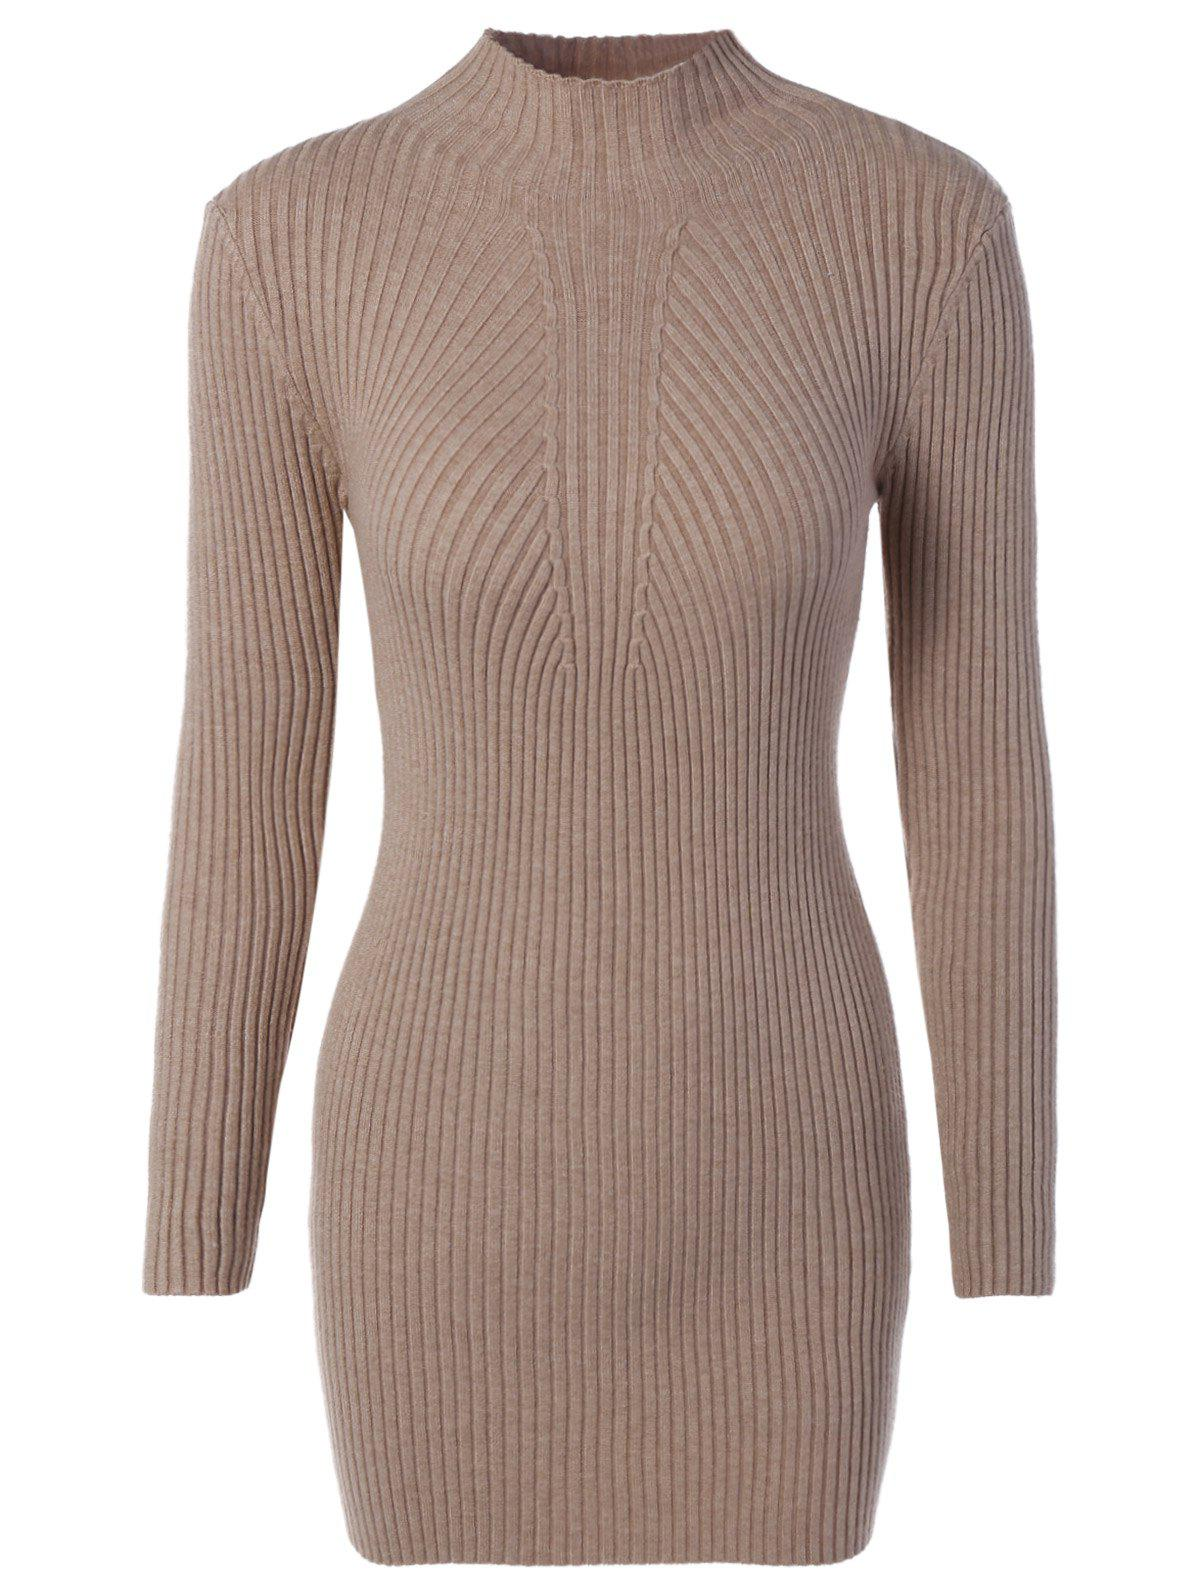 Chic High Neck Bodycon Sweater Dress